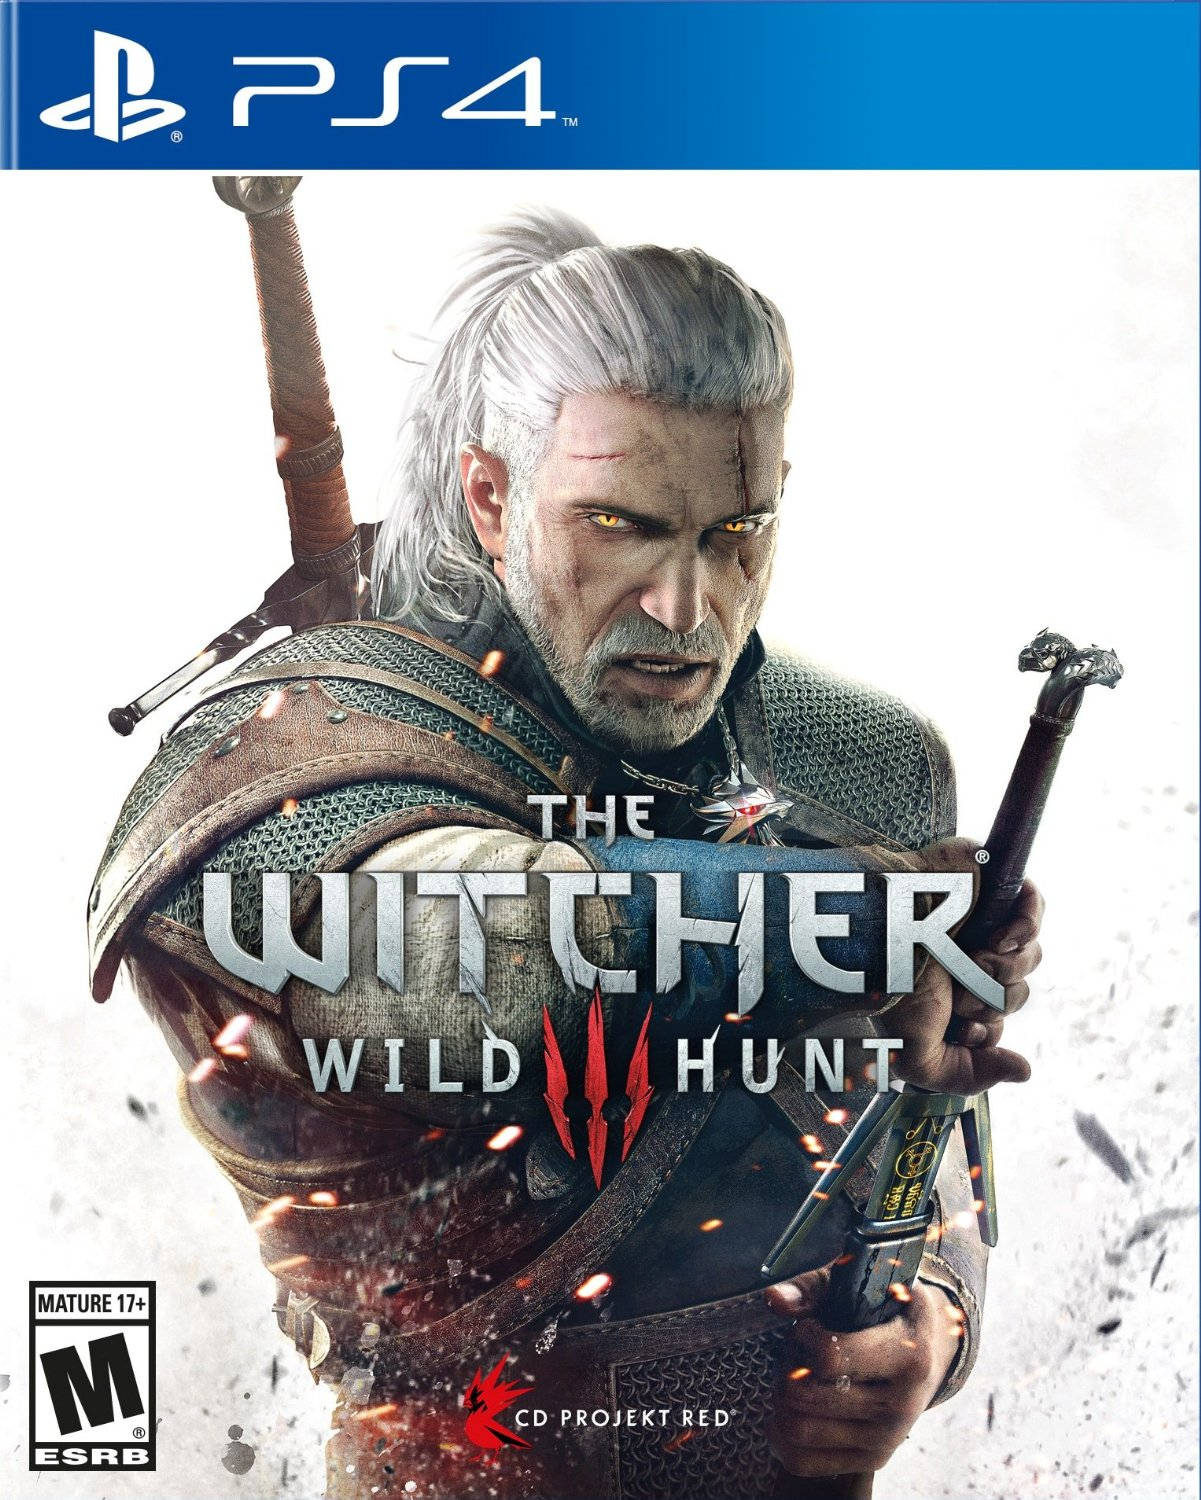 PS4 The Witcher 3 Wild Hunt em Portugu�s e Espa�ol